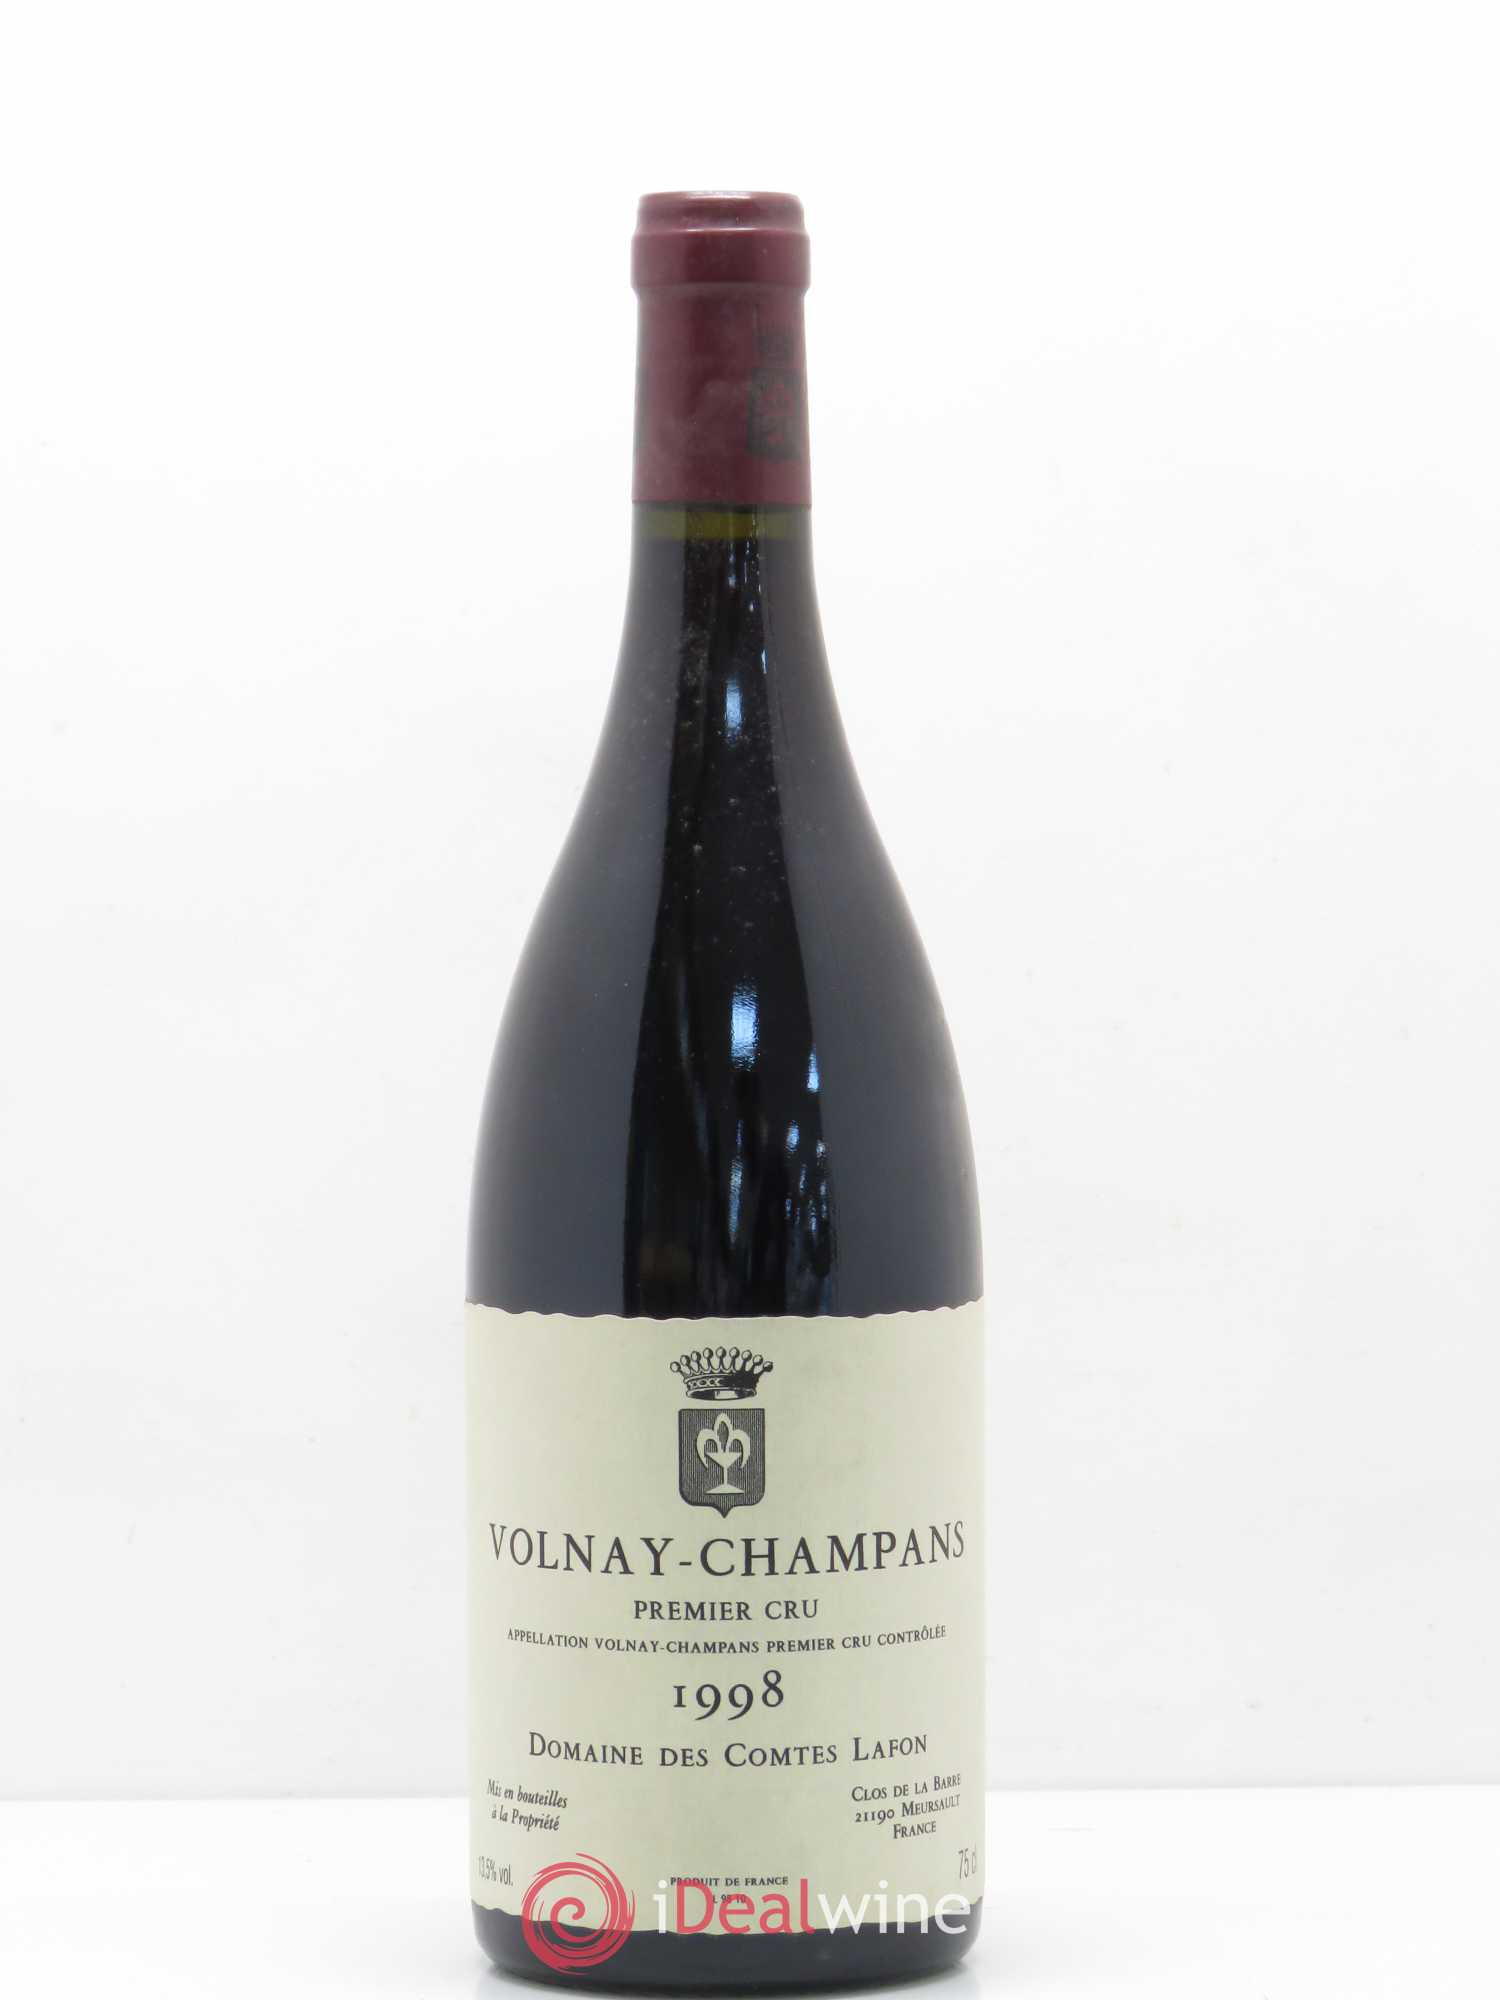 Volnay 1er Cru Champans Comtes Lafon (Domaine des)  1998 - Lot of 1 Bottle